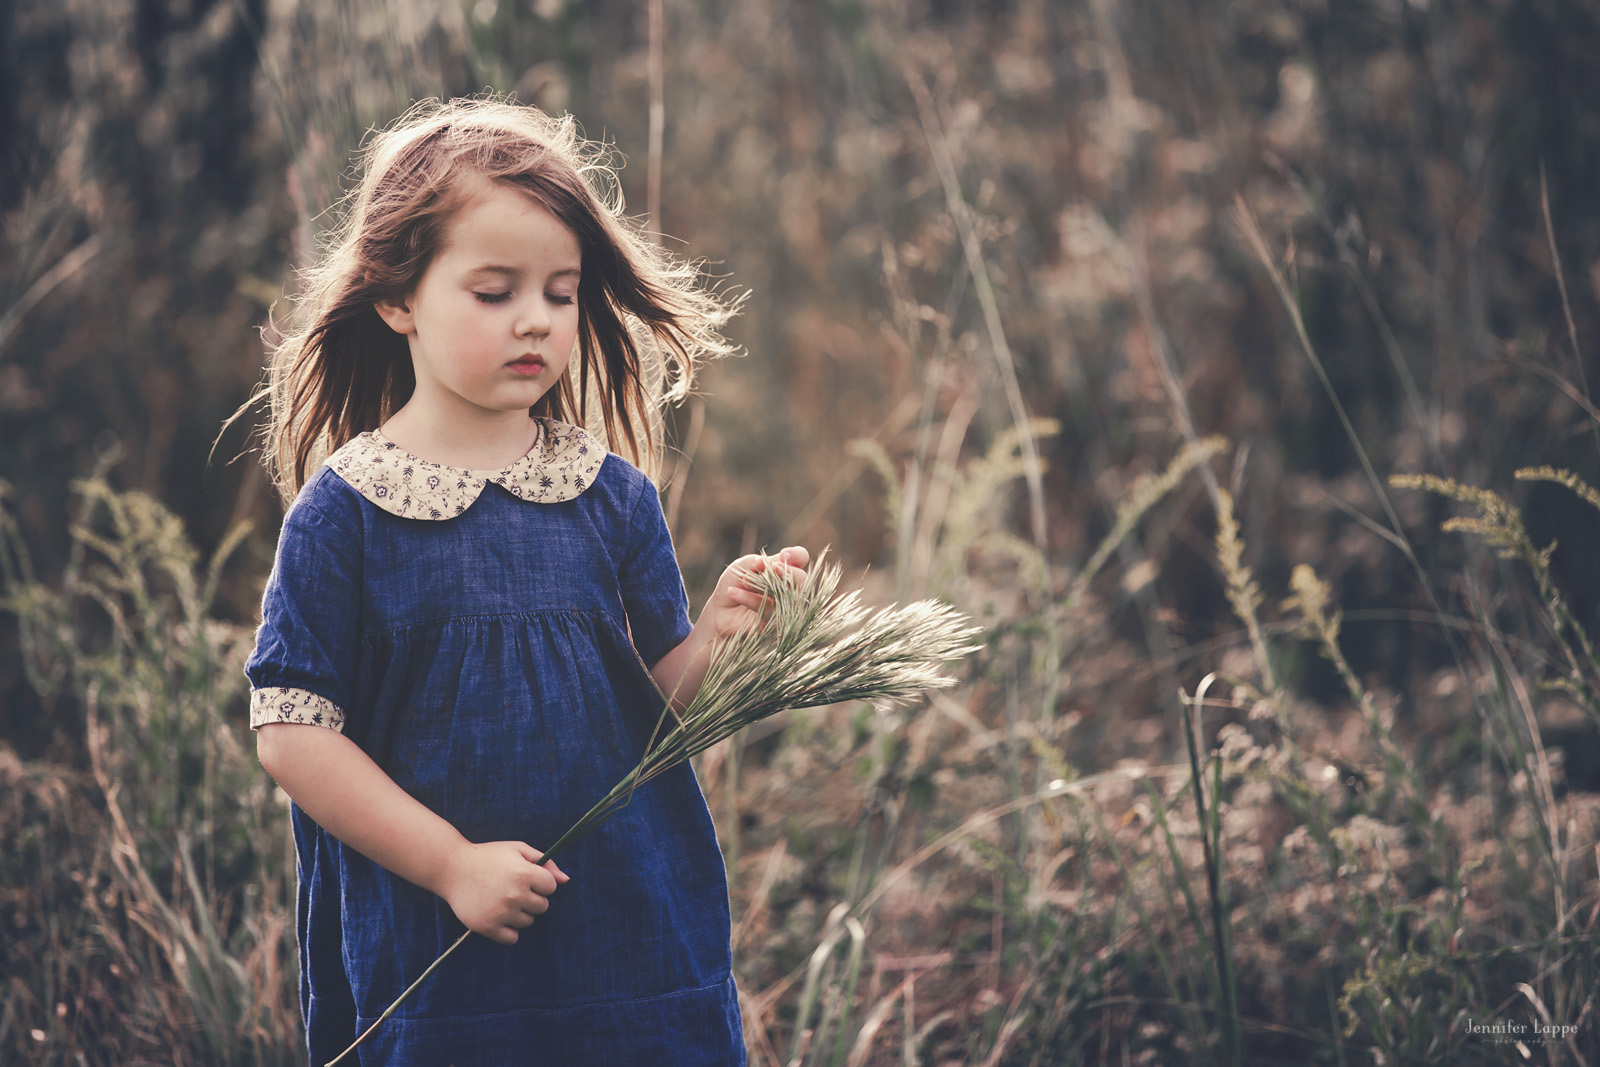 photo of girl carrying grass outside by Jennifer Lappe